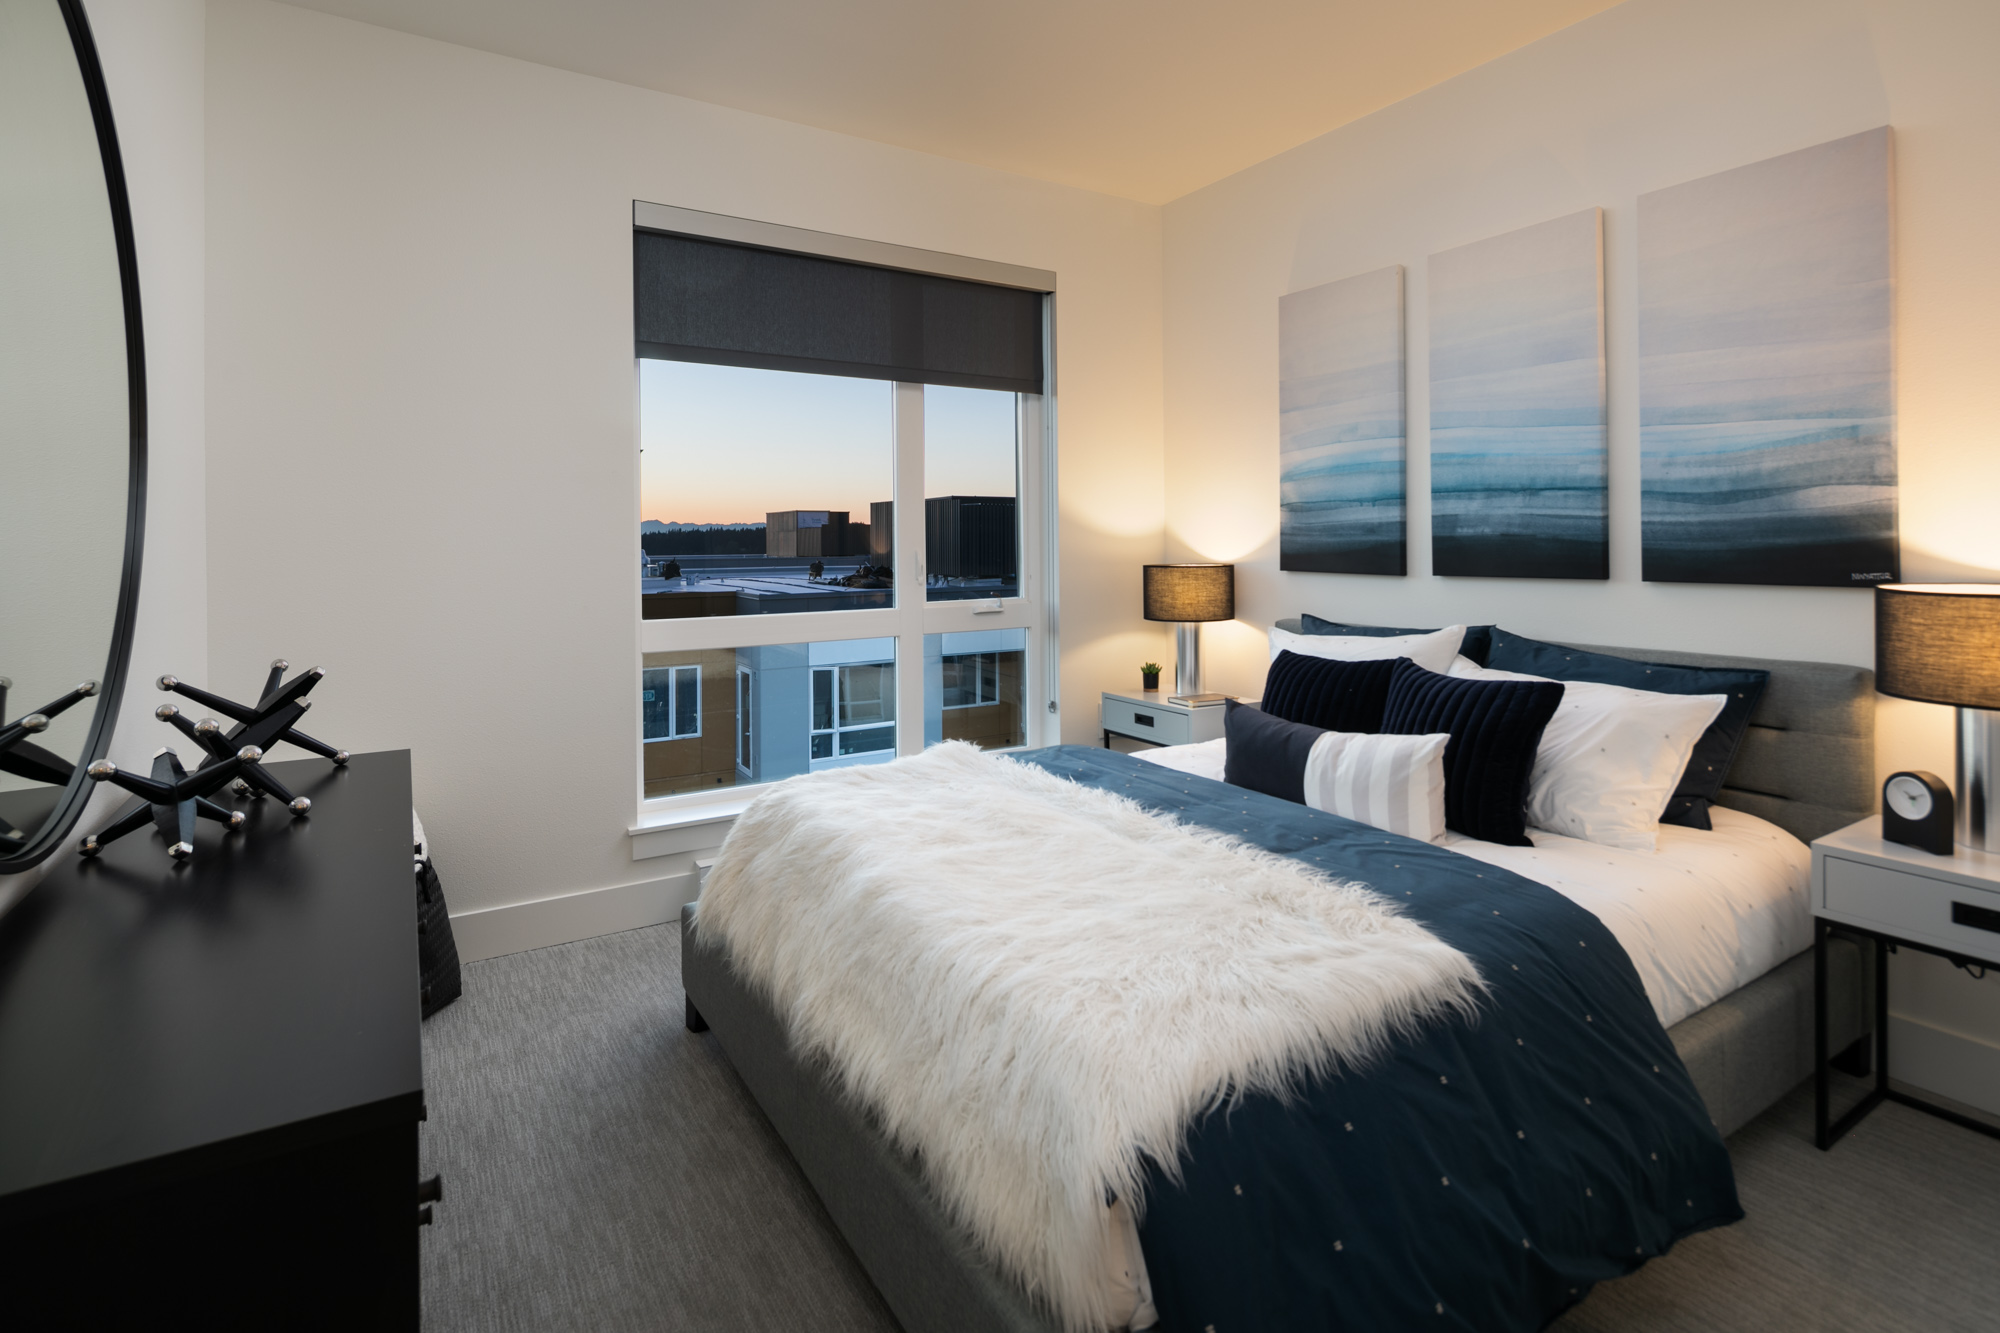 Interior of apartment bedroom with modern furnishings and large window